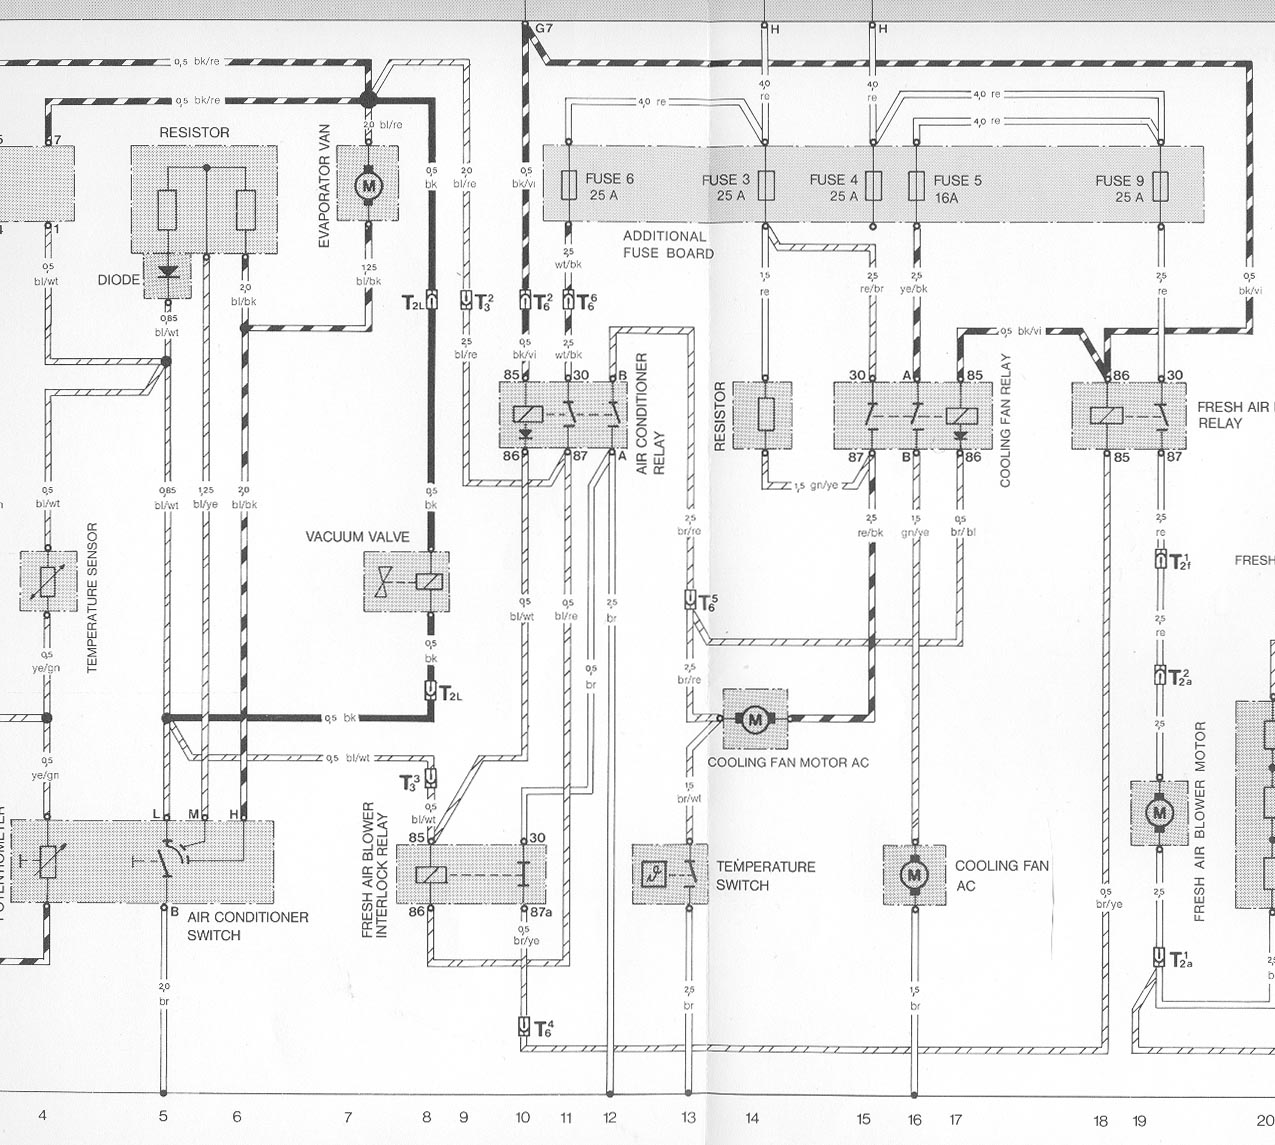 early_cooling_fan_with_ac cooling fan operation and troubleshooting Hayden Electric Fan Wiring Diagram at metegol.co